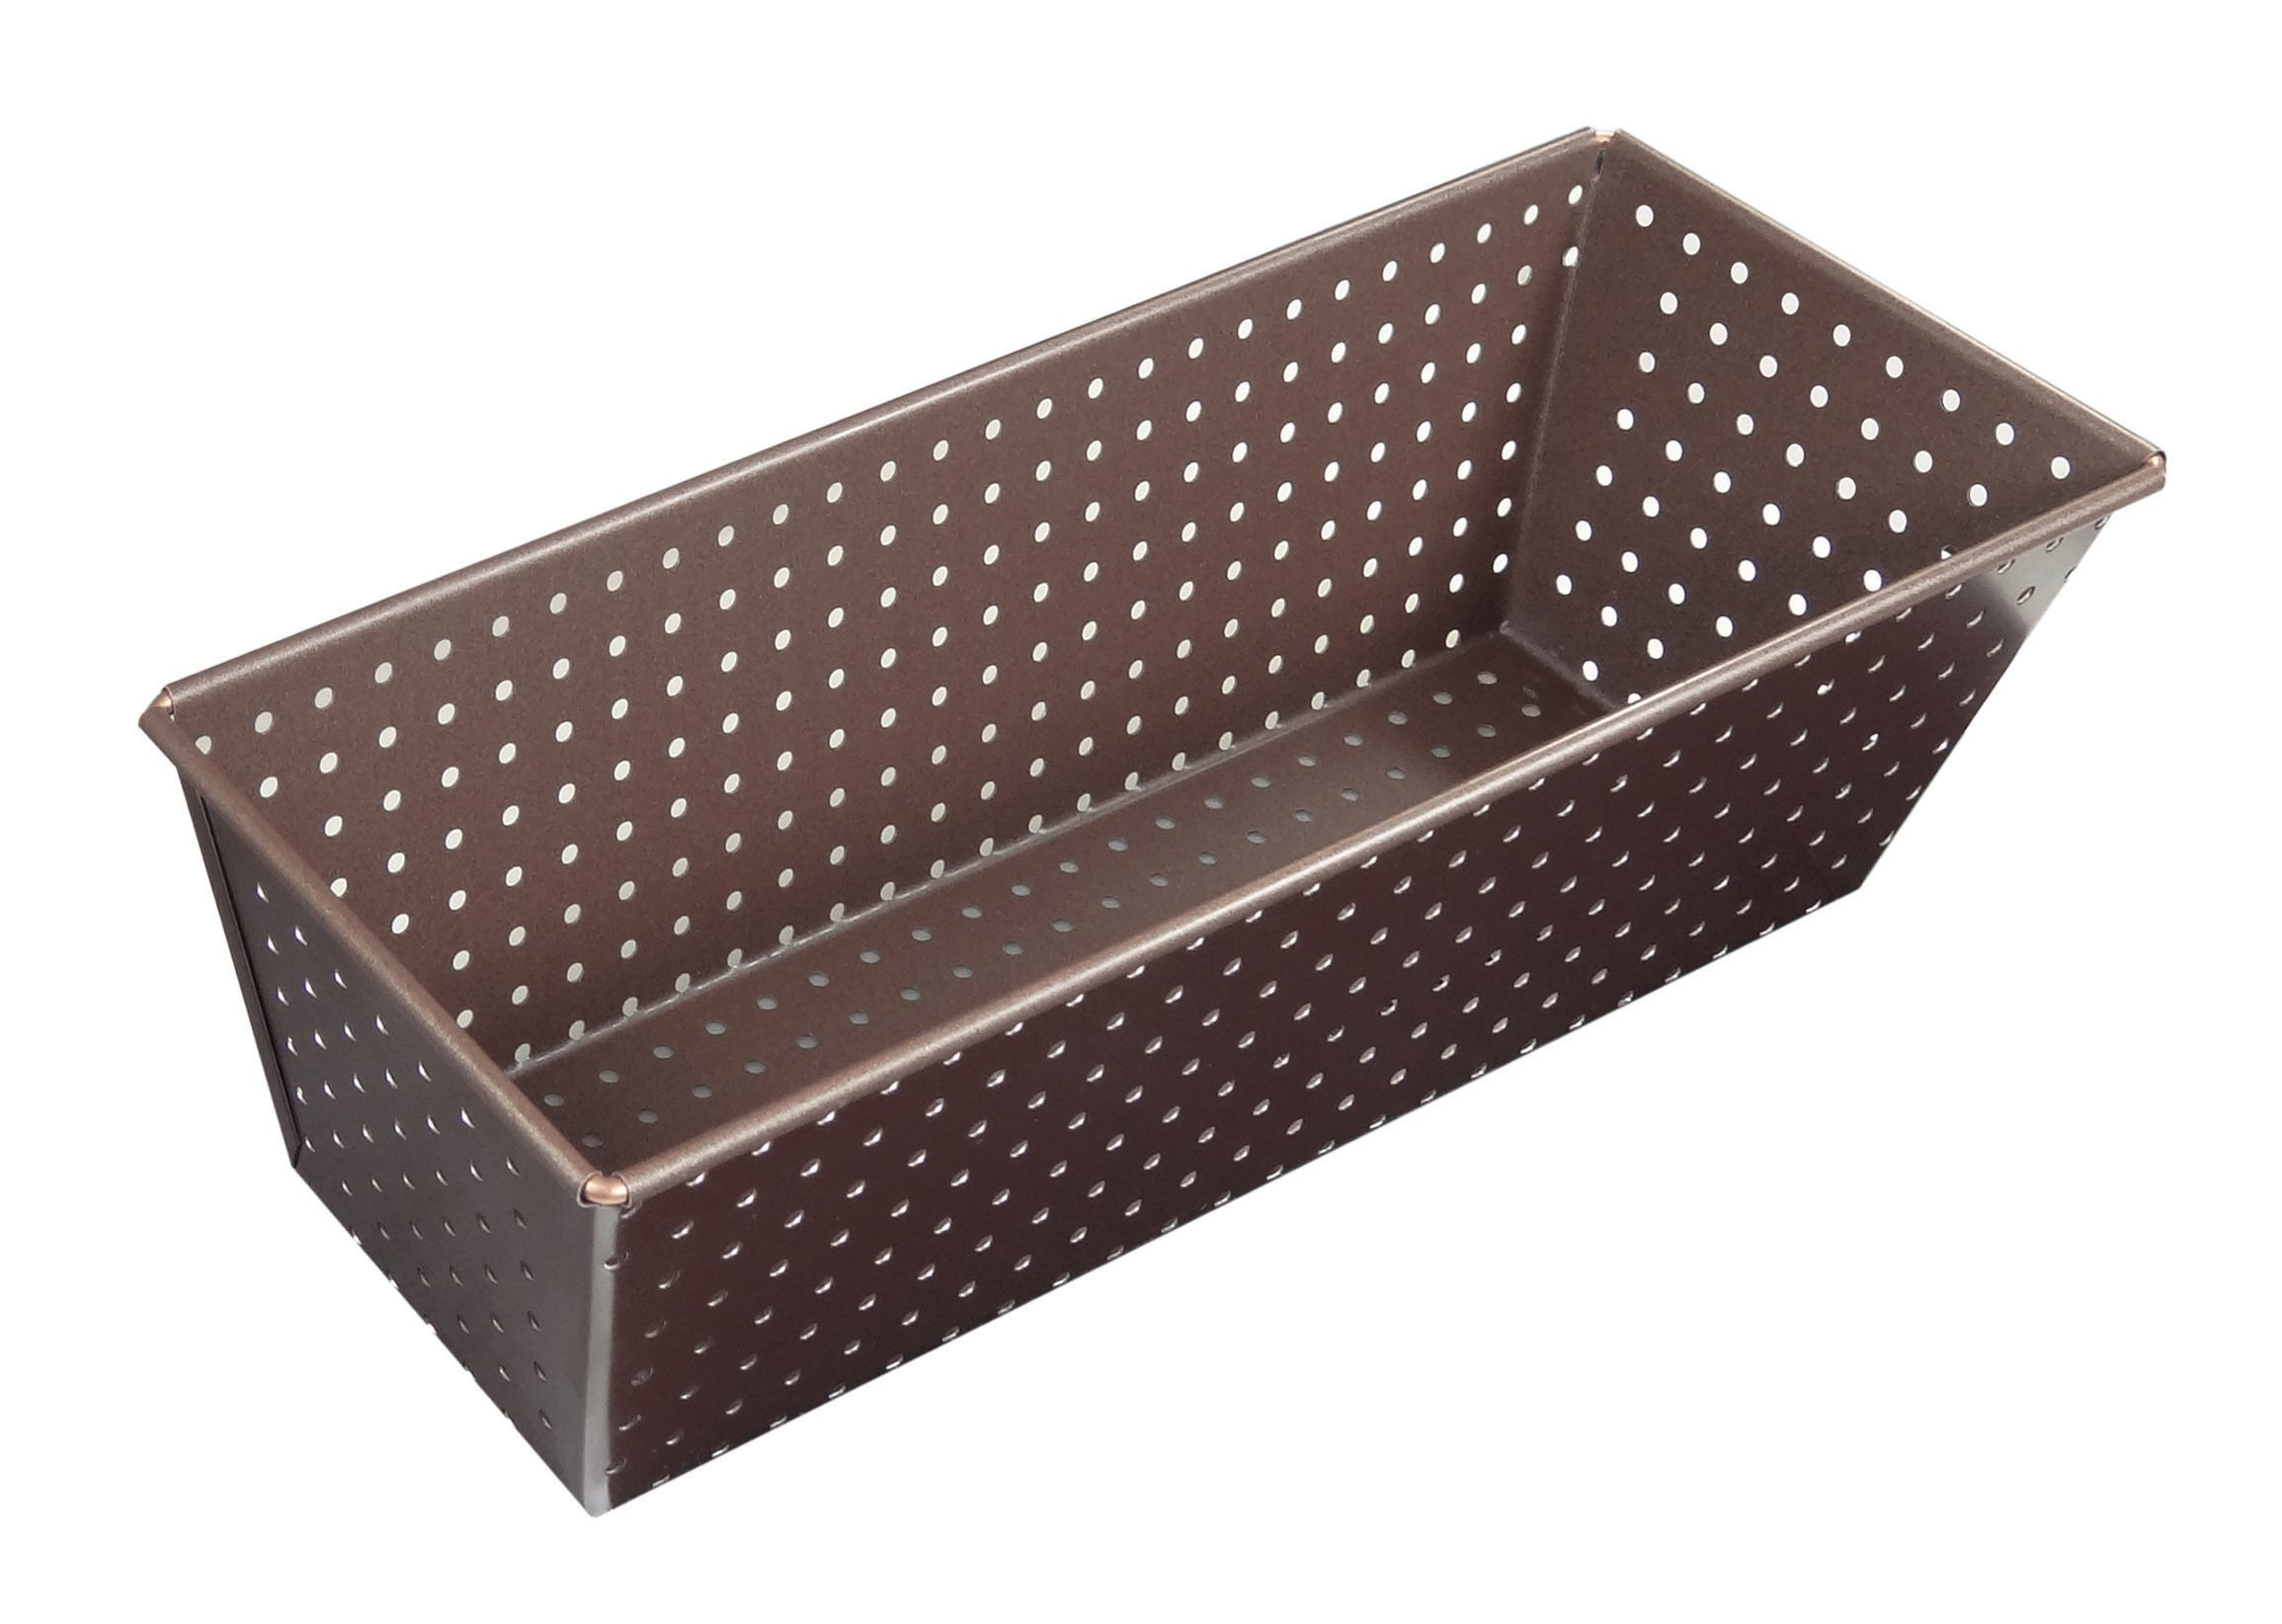 Paderno World Cuisine A4982313 Non-Stick Perforated Loaf Pan, Brown